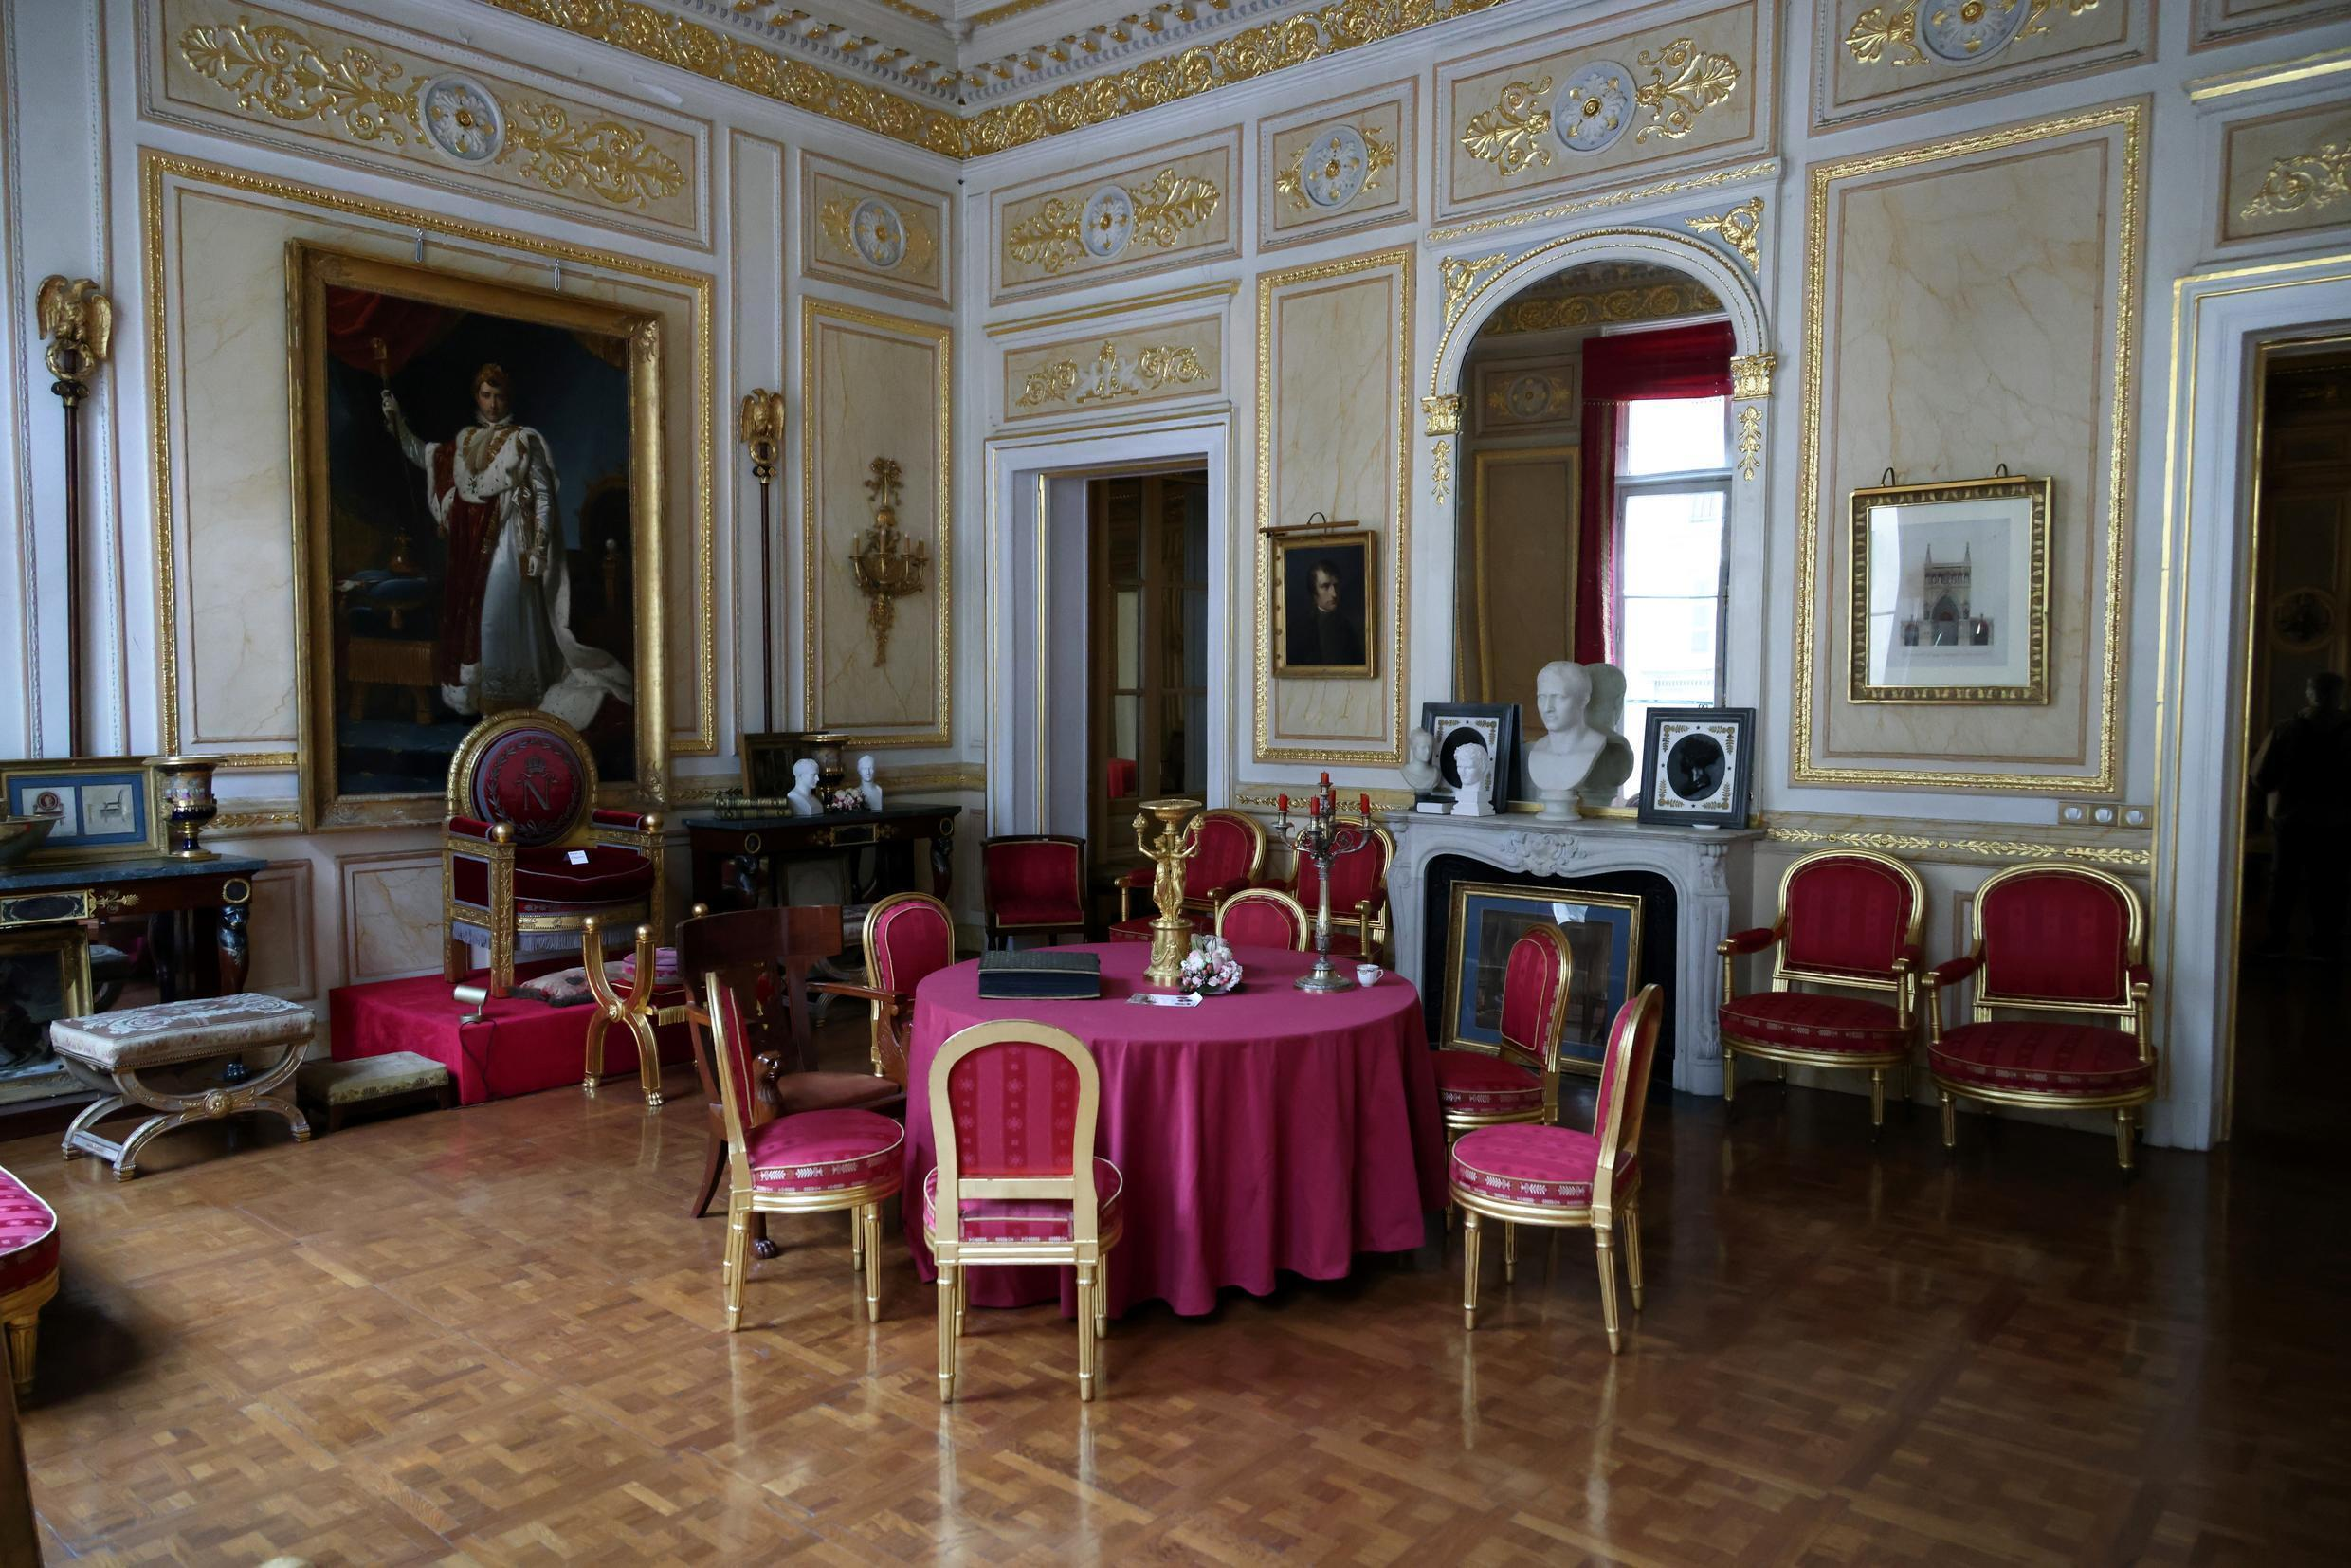 The luxury Palais Vivienne owned by French collector Pierre-Jean Chalencon was allegedly used for a clandestine dinner